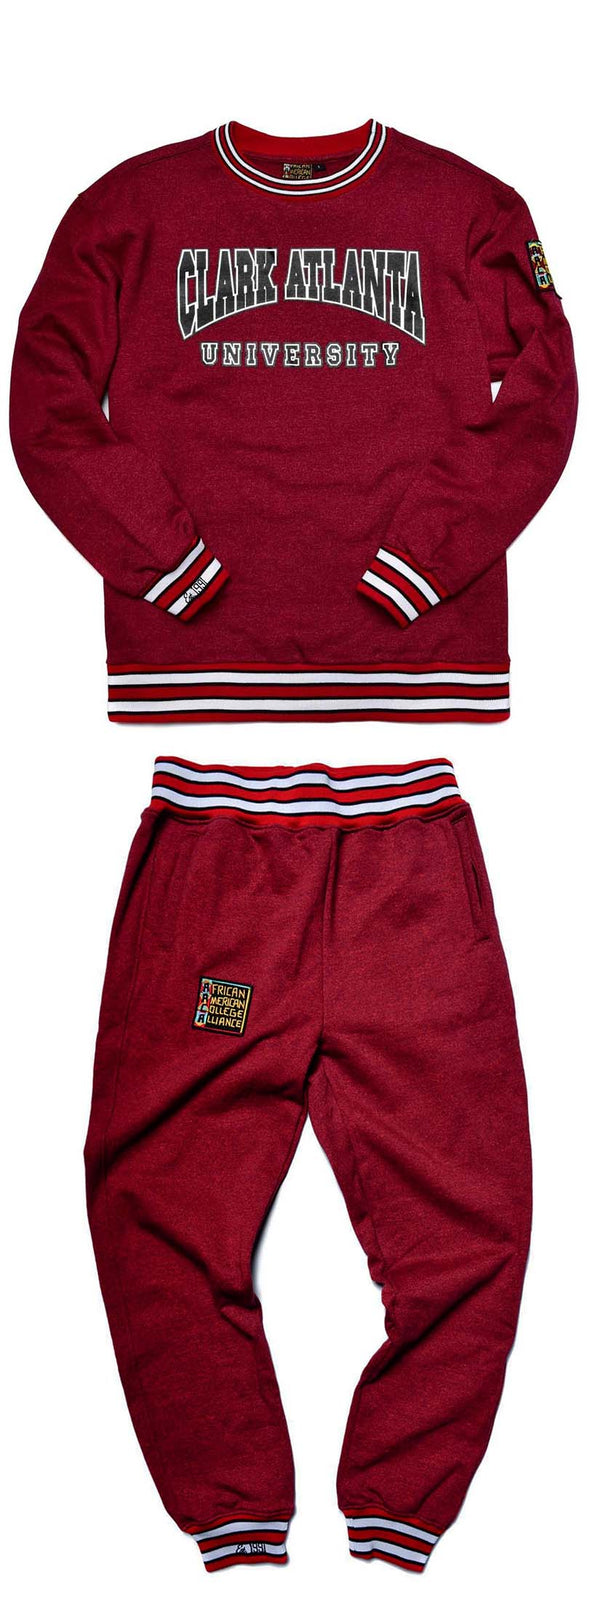 Clark Atlanta University Classic '91  Crewneck Sweat Suit Red Heather